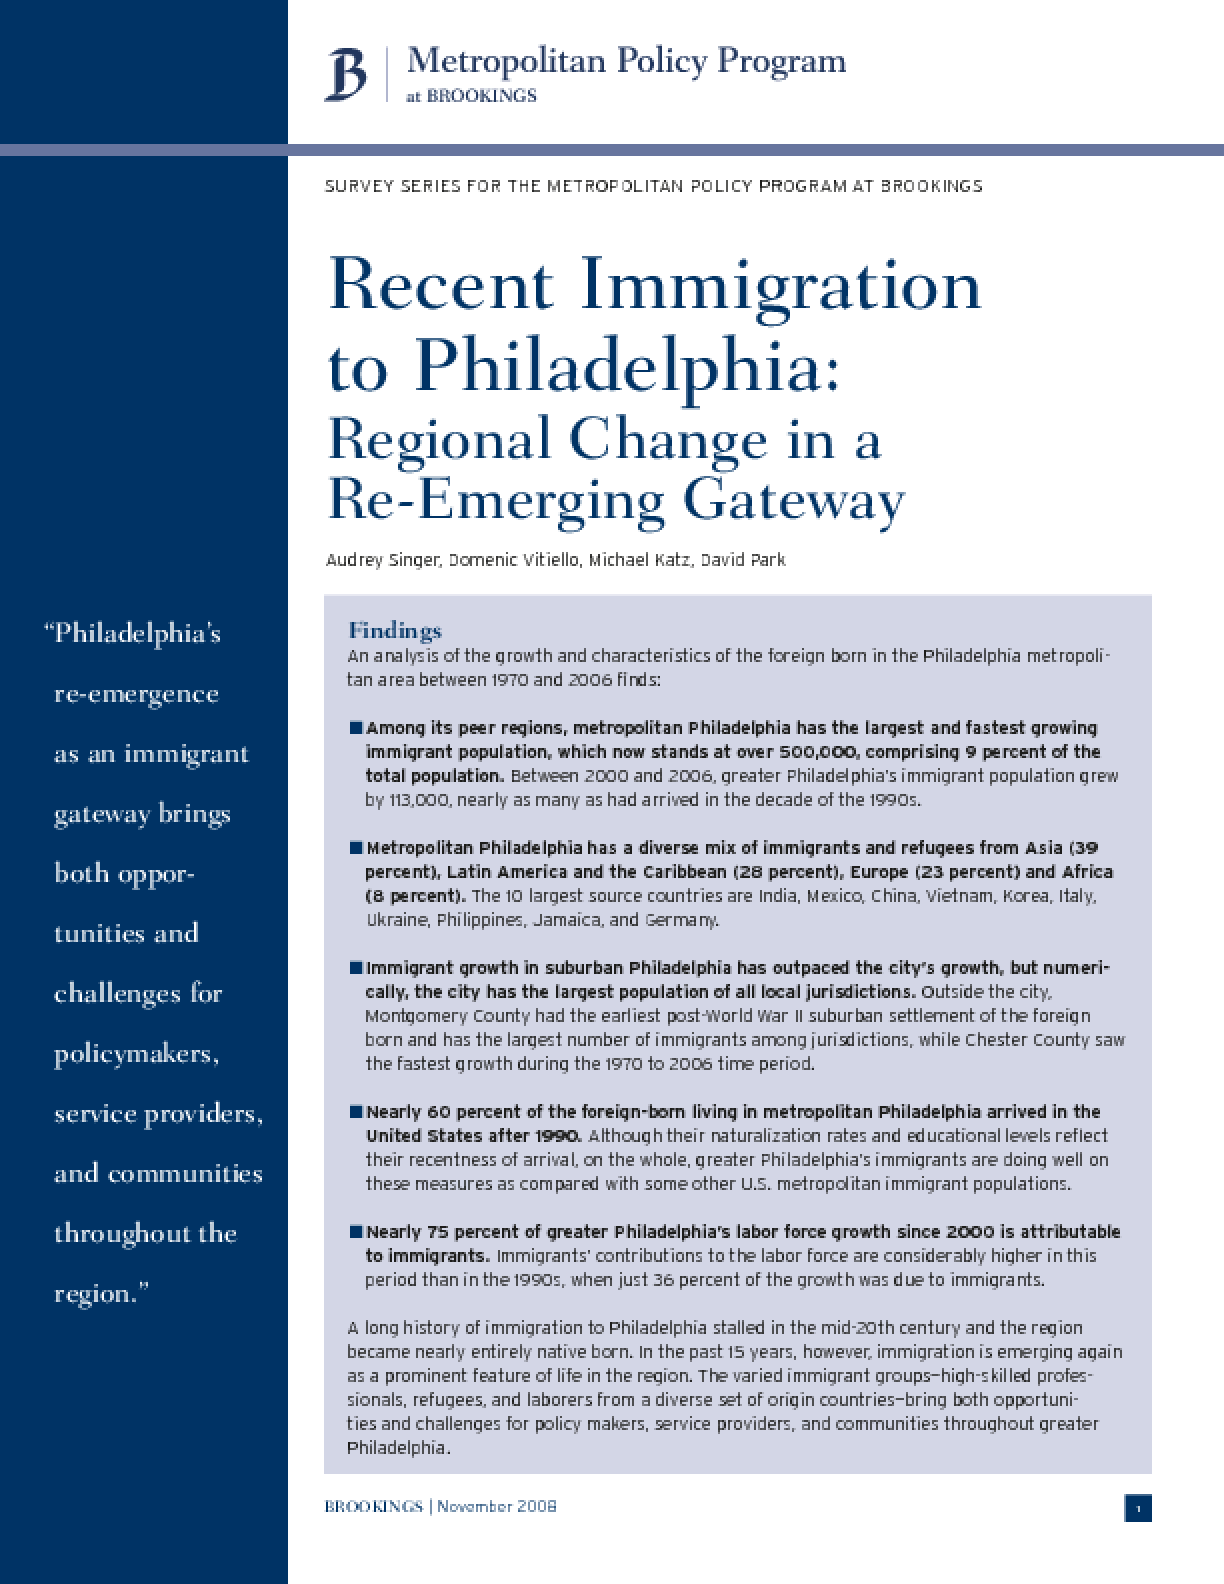 Recent Immigration to Philadelphia: Regional Change in a Re-Emerging Gateway